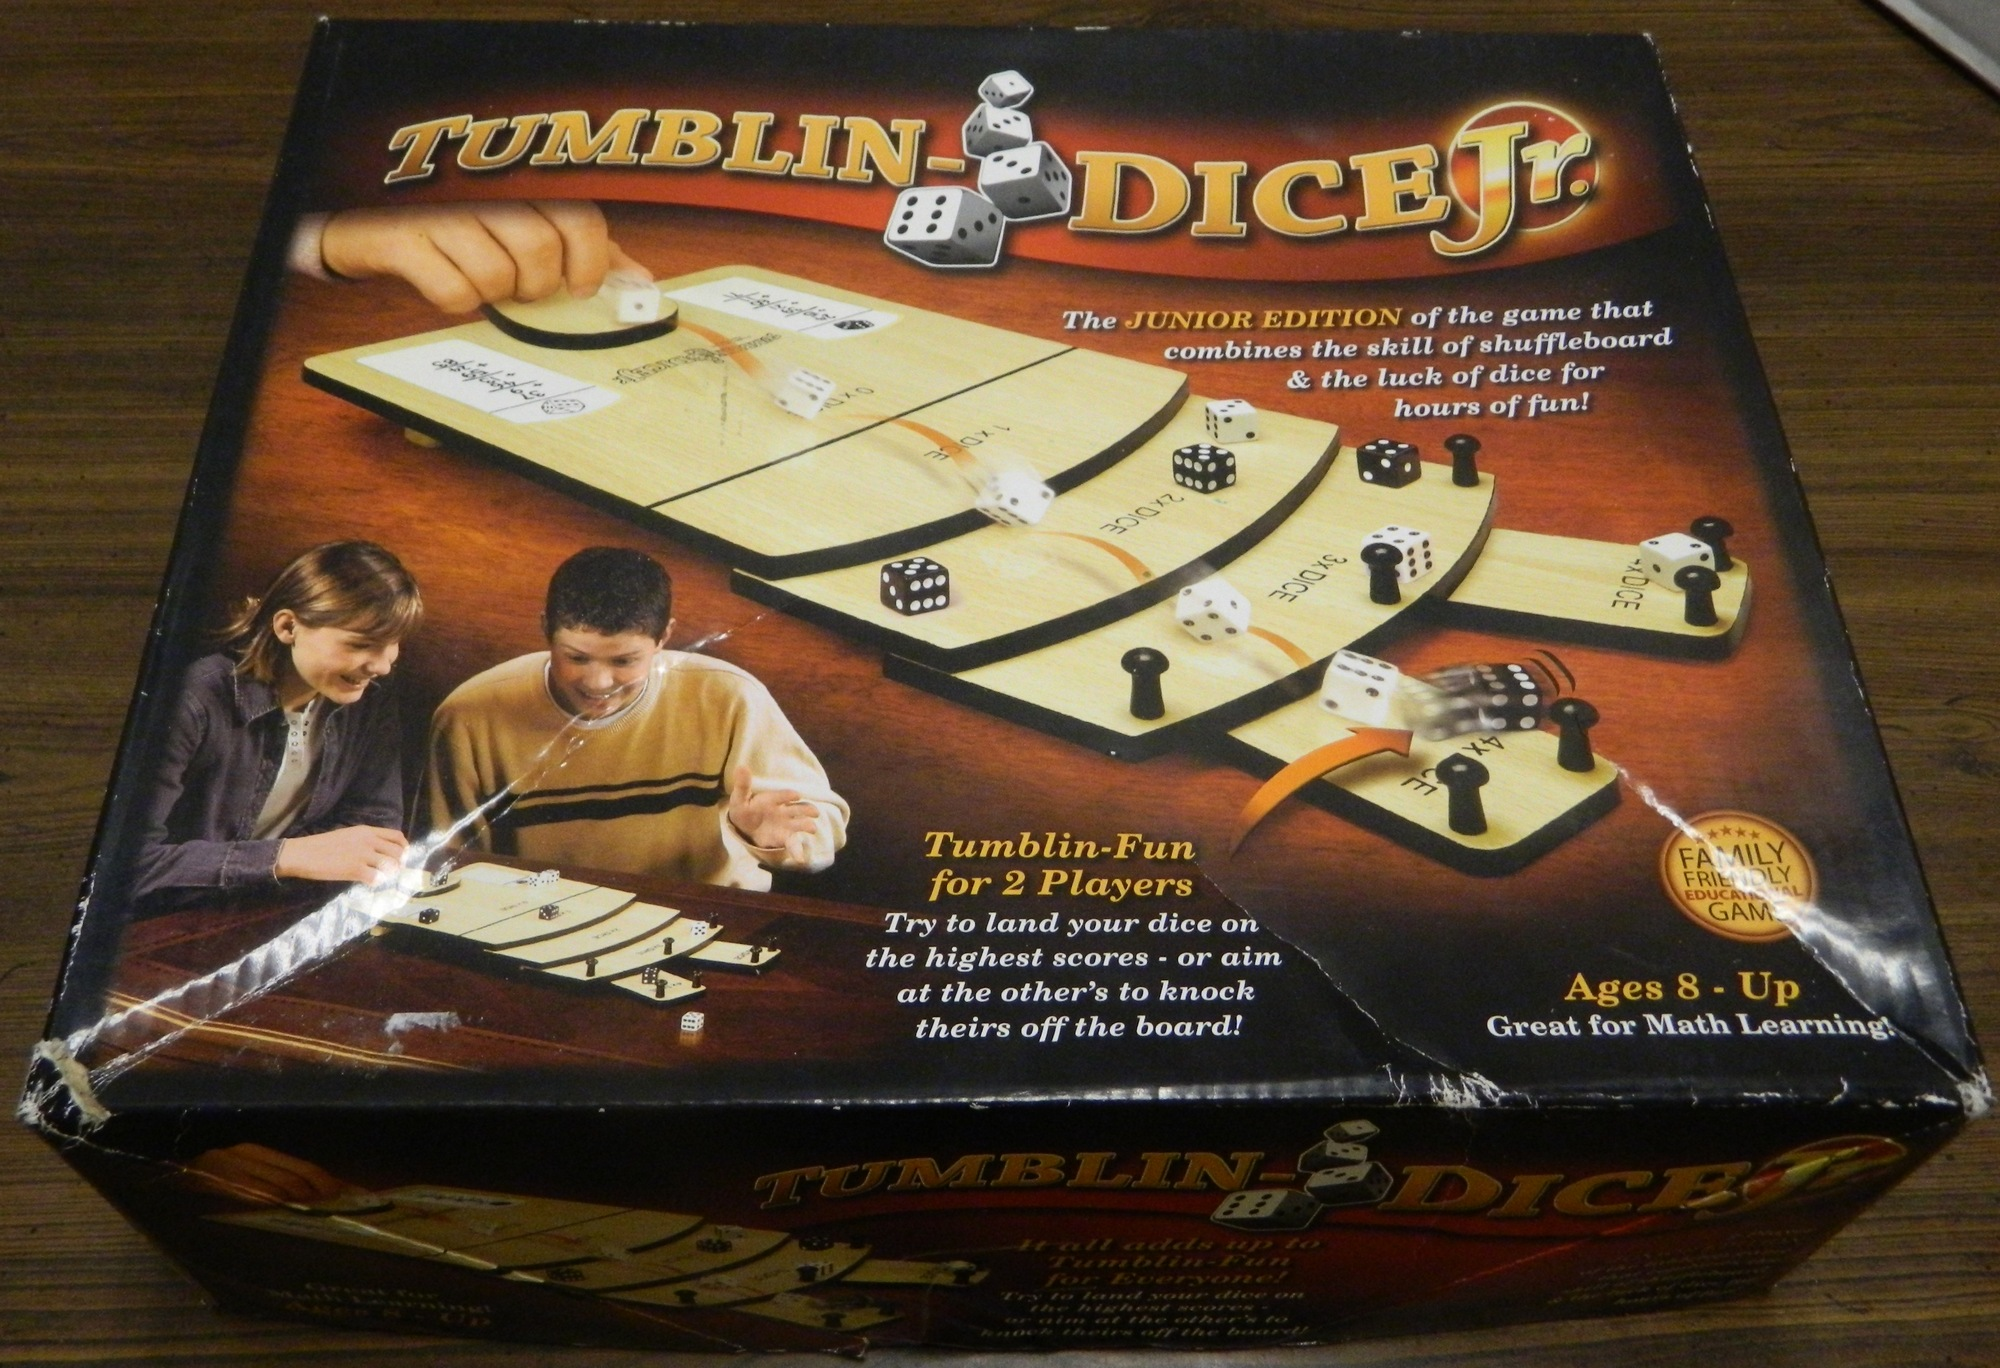 Box for Tumblin-Dice Jr